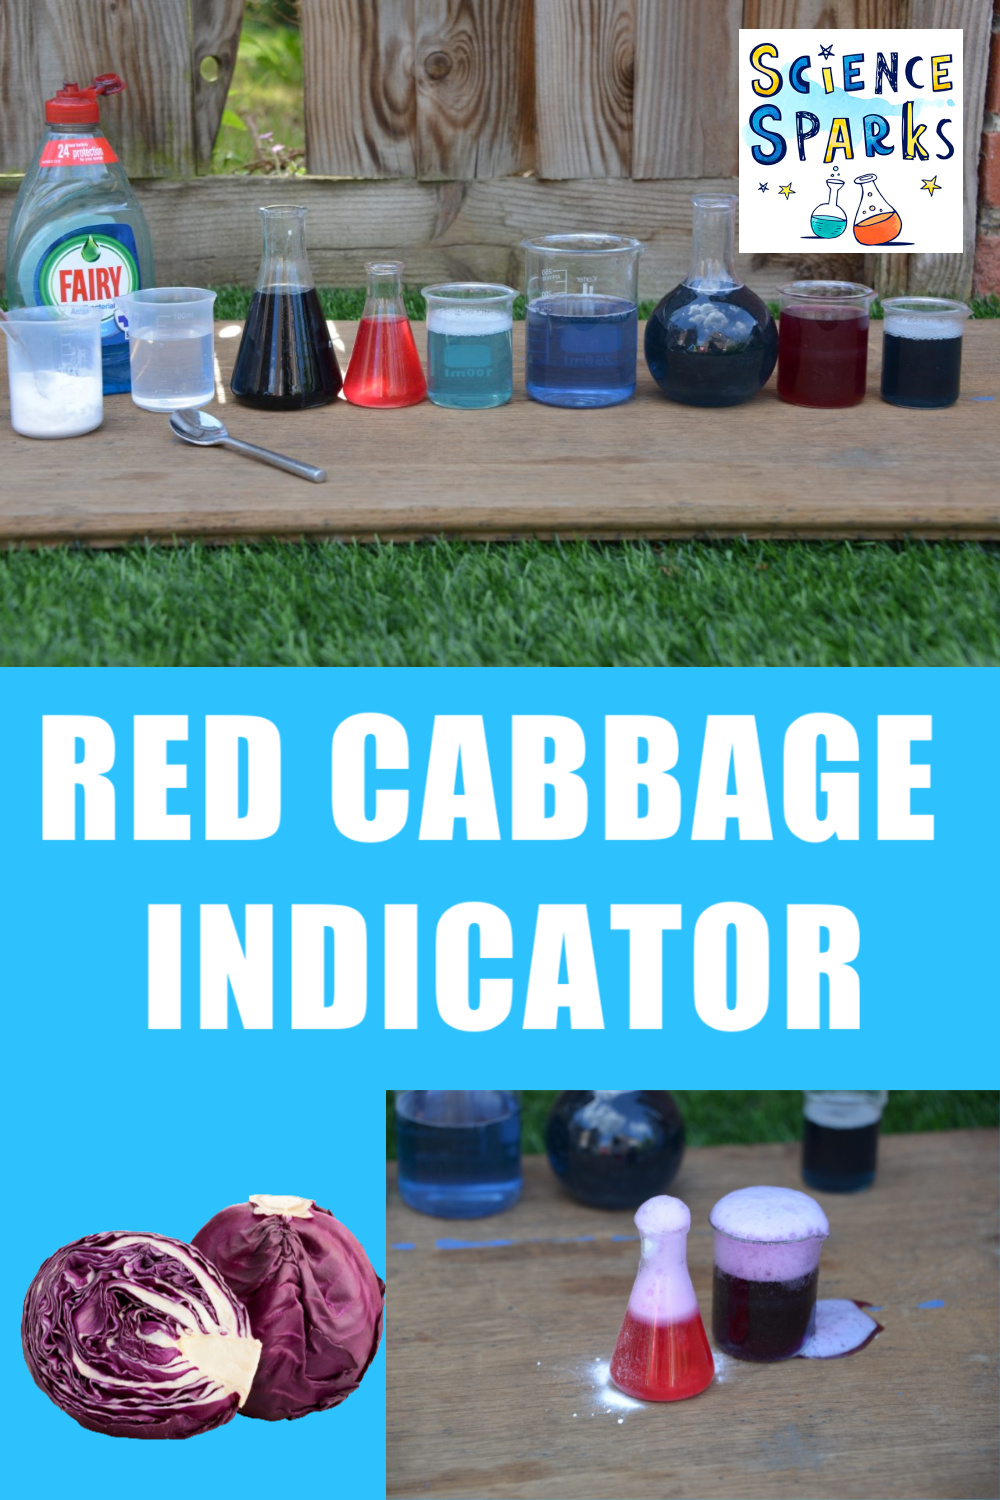 red cabbage indicator experiment instructions